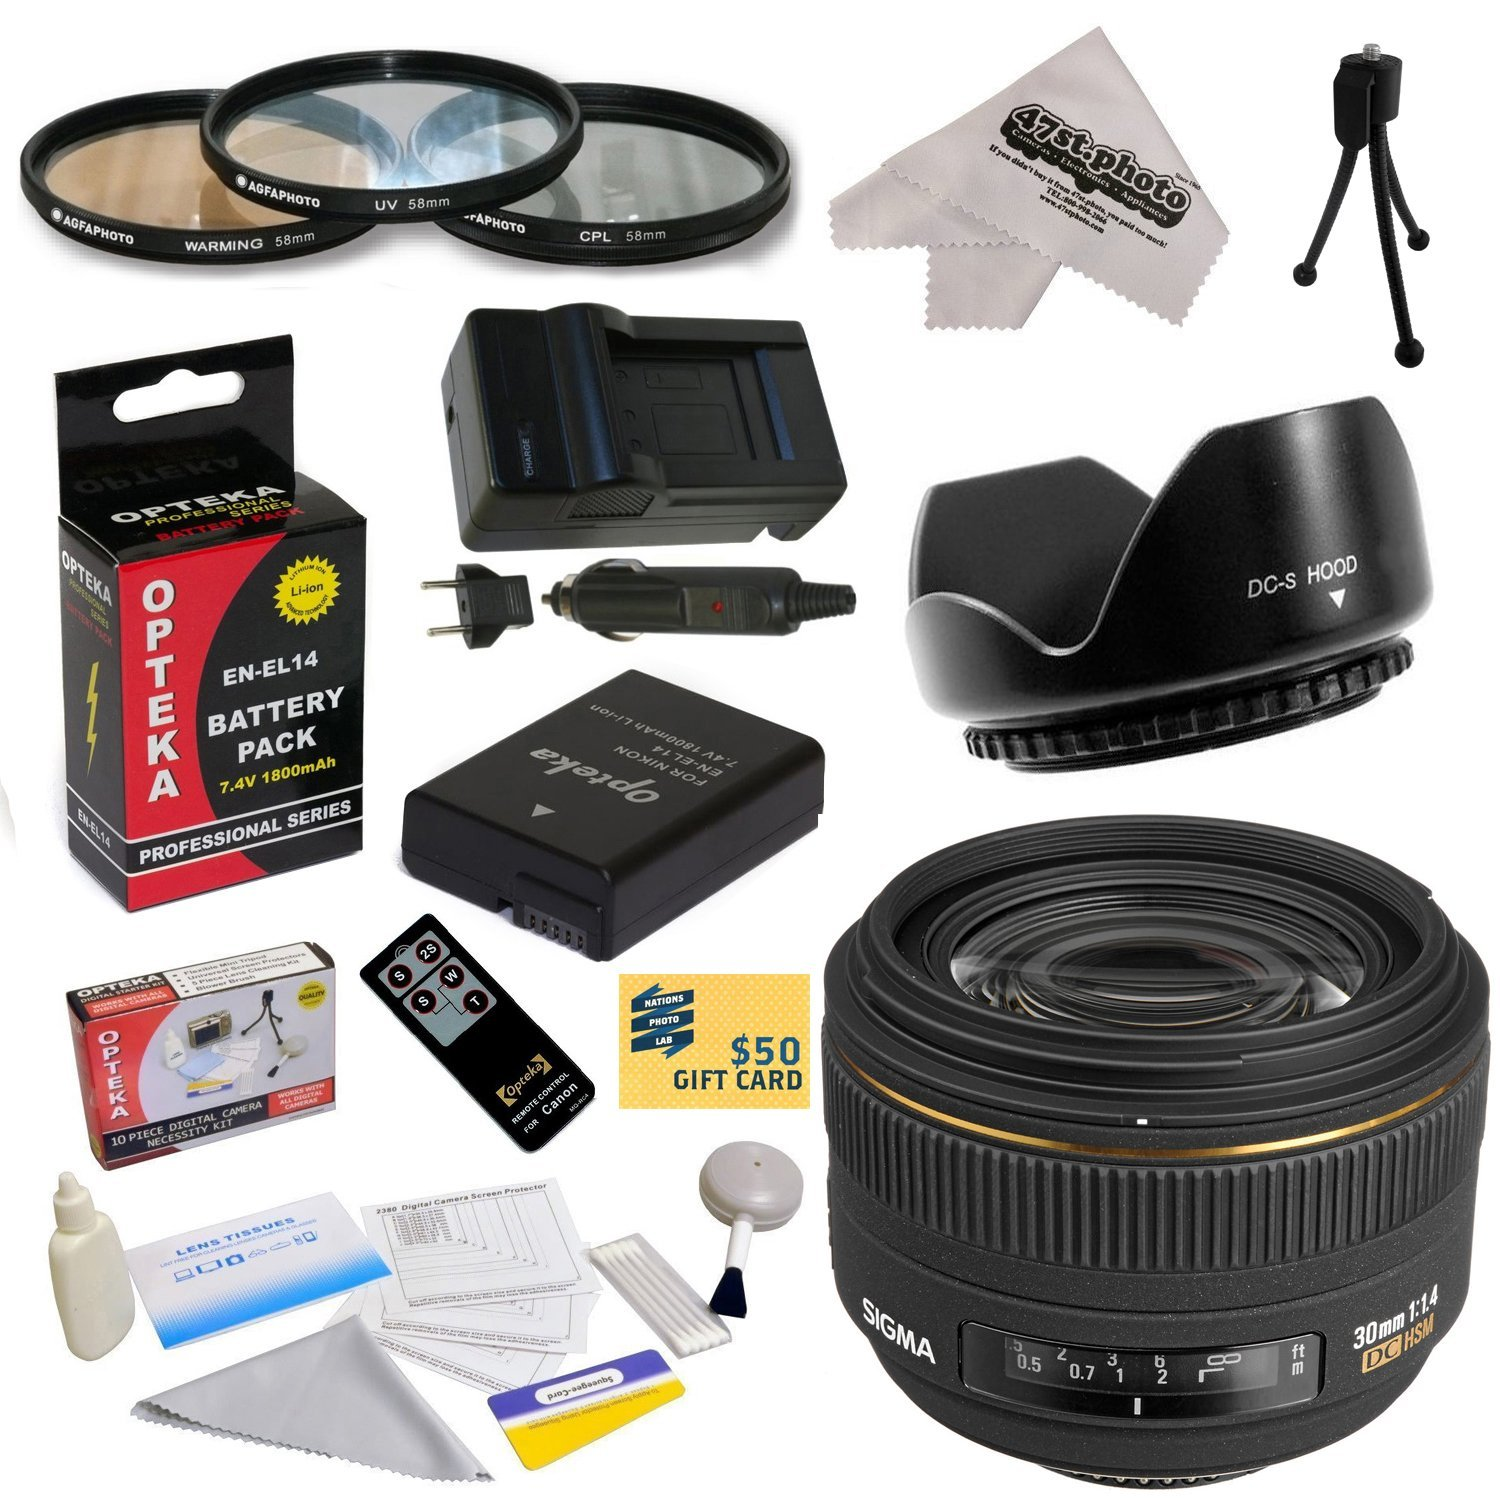 Sigma 30mm f/1.4 EX DC HSM Autofocus Lens for Nikon with 62MM 3 Piece Filter Kit, Hood, EN-EL14, Charger, Remote Control, Cleaning Kit, Mini Tripod, 47stphoto Microfiber Cloth